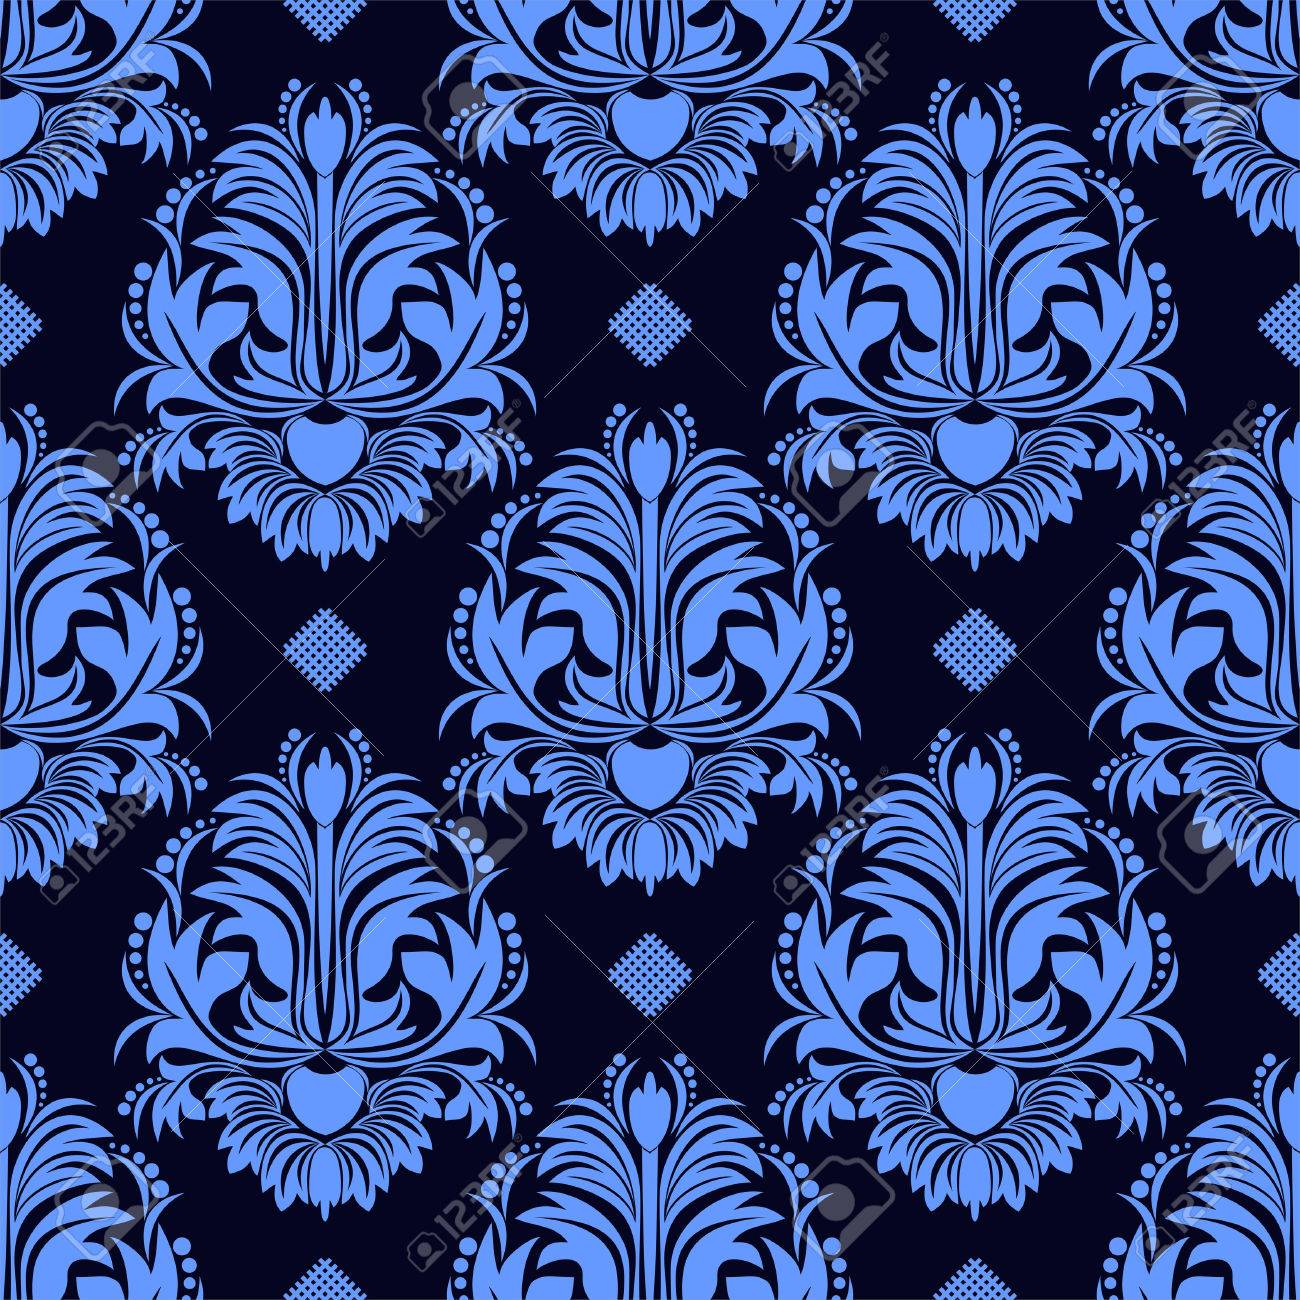 Seamless Floral Damask Wallpaper In Blue Colors Royalty Free